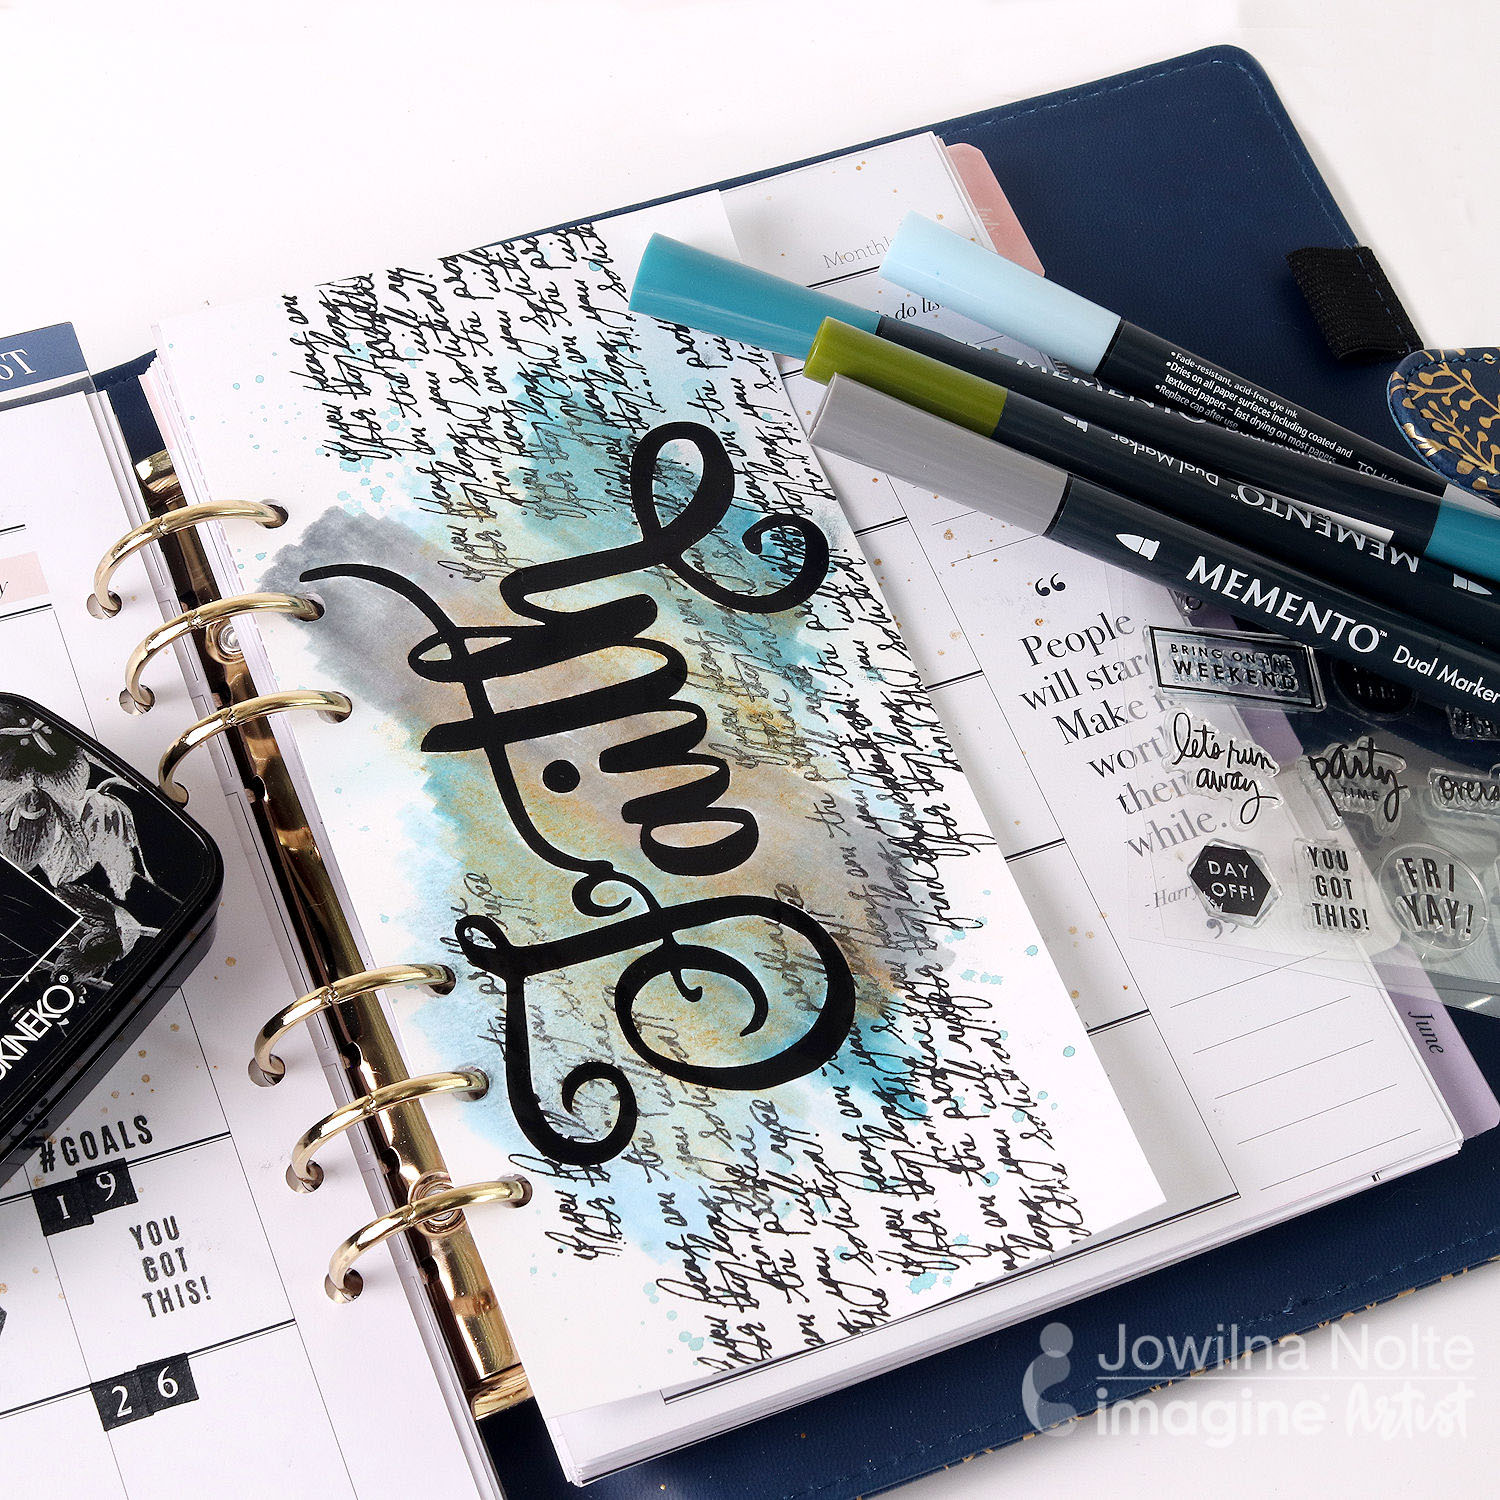 Creating a Colorful 2020 Planner Page with Memento Markers